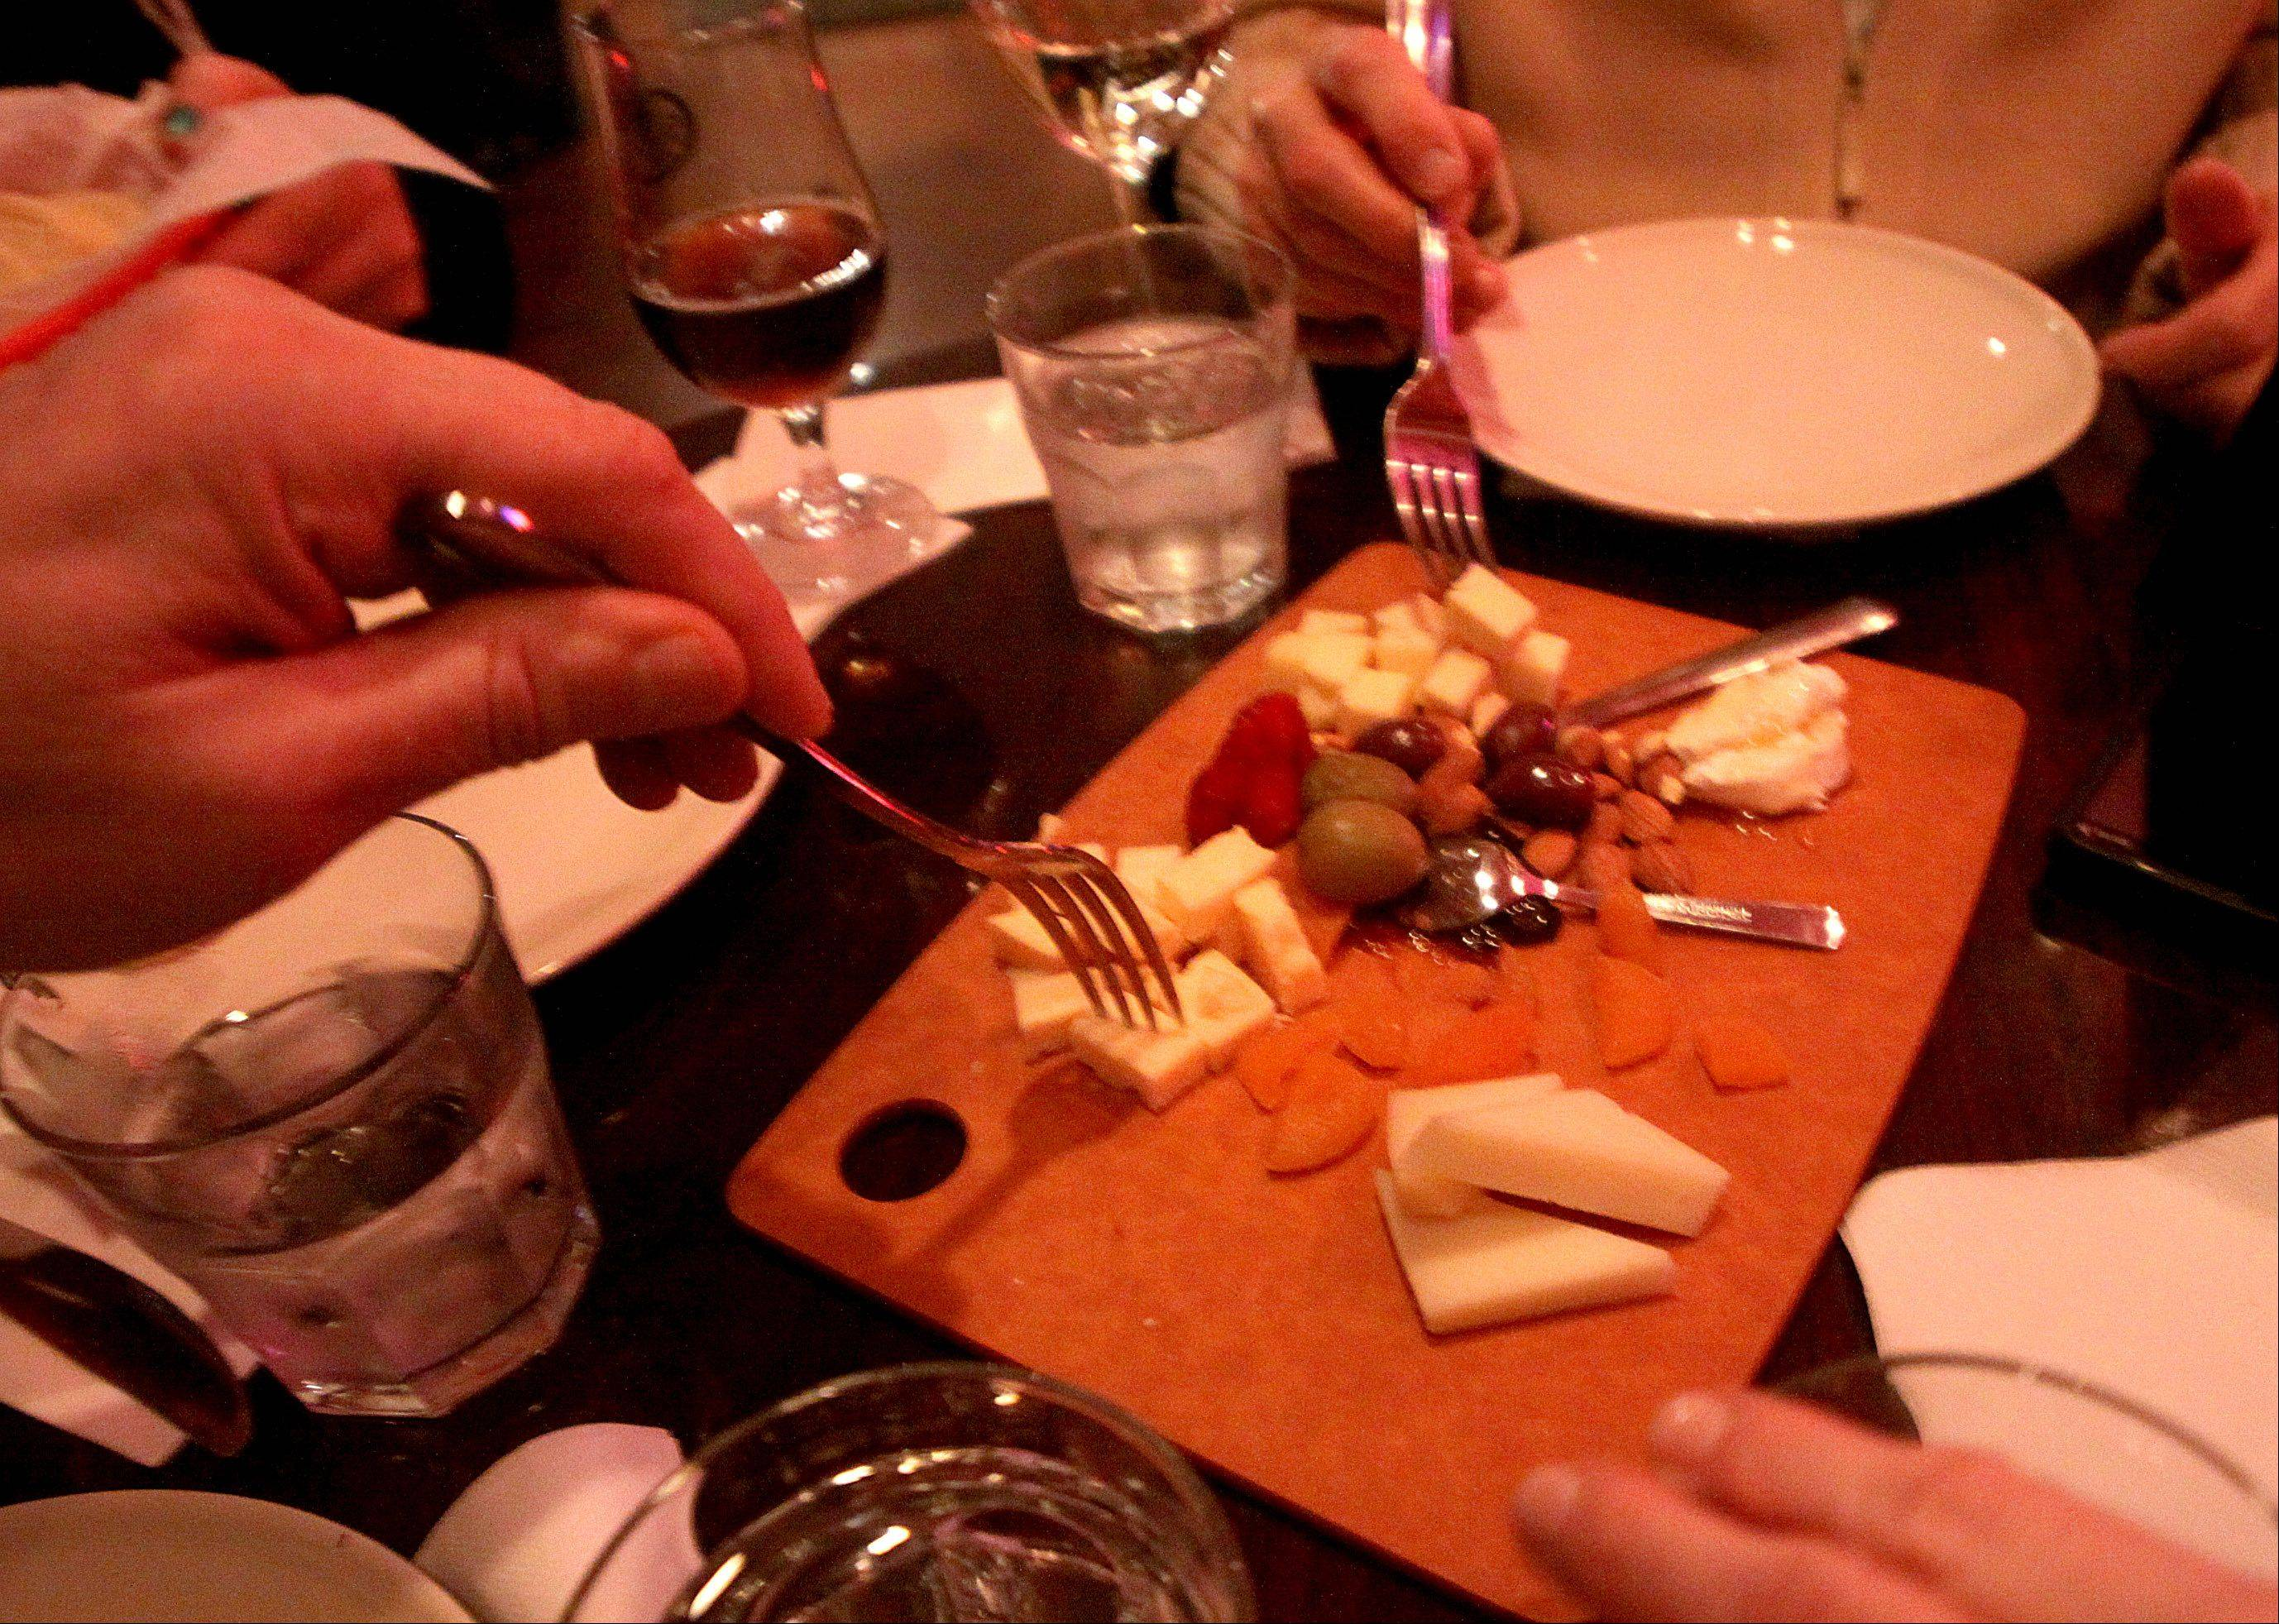 Patrons enjoy a plate of olives, cheese and dried fruit at the Tuscan Market Wine Bar in Arlington Heights.